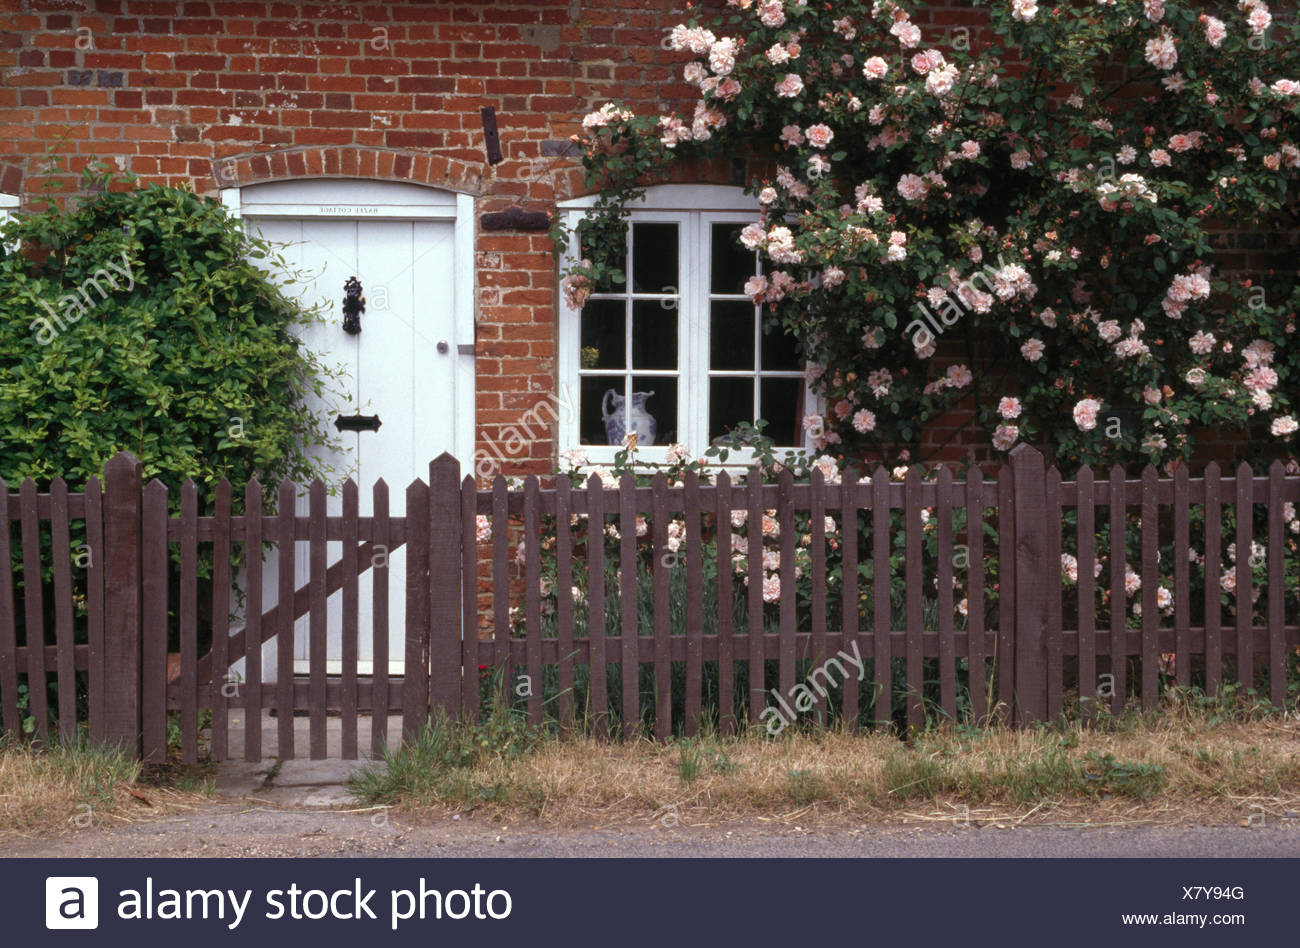 Wooden Fence And Gate In Front Of Cottage With Pink Climbing Roses